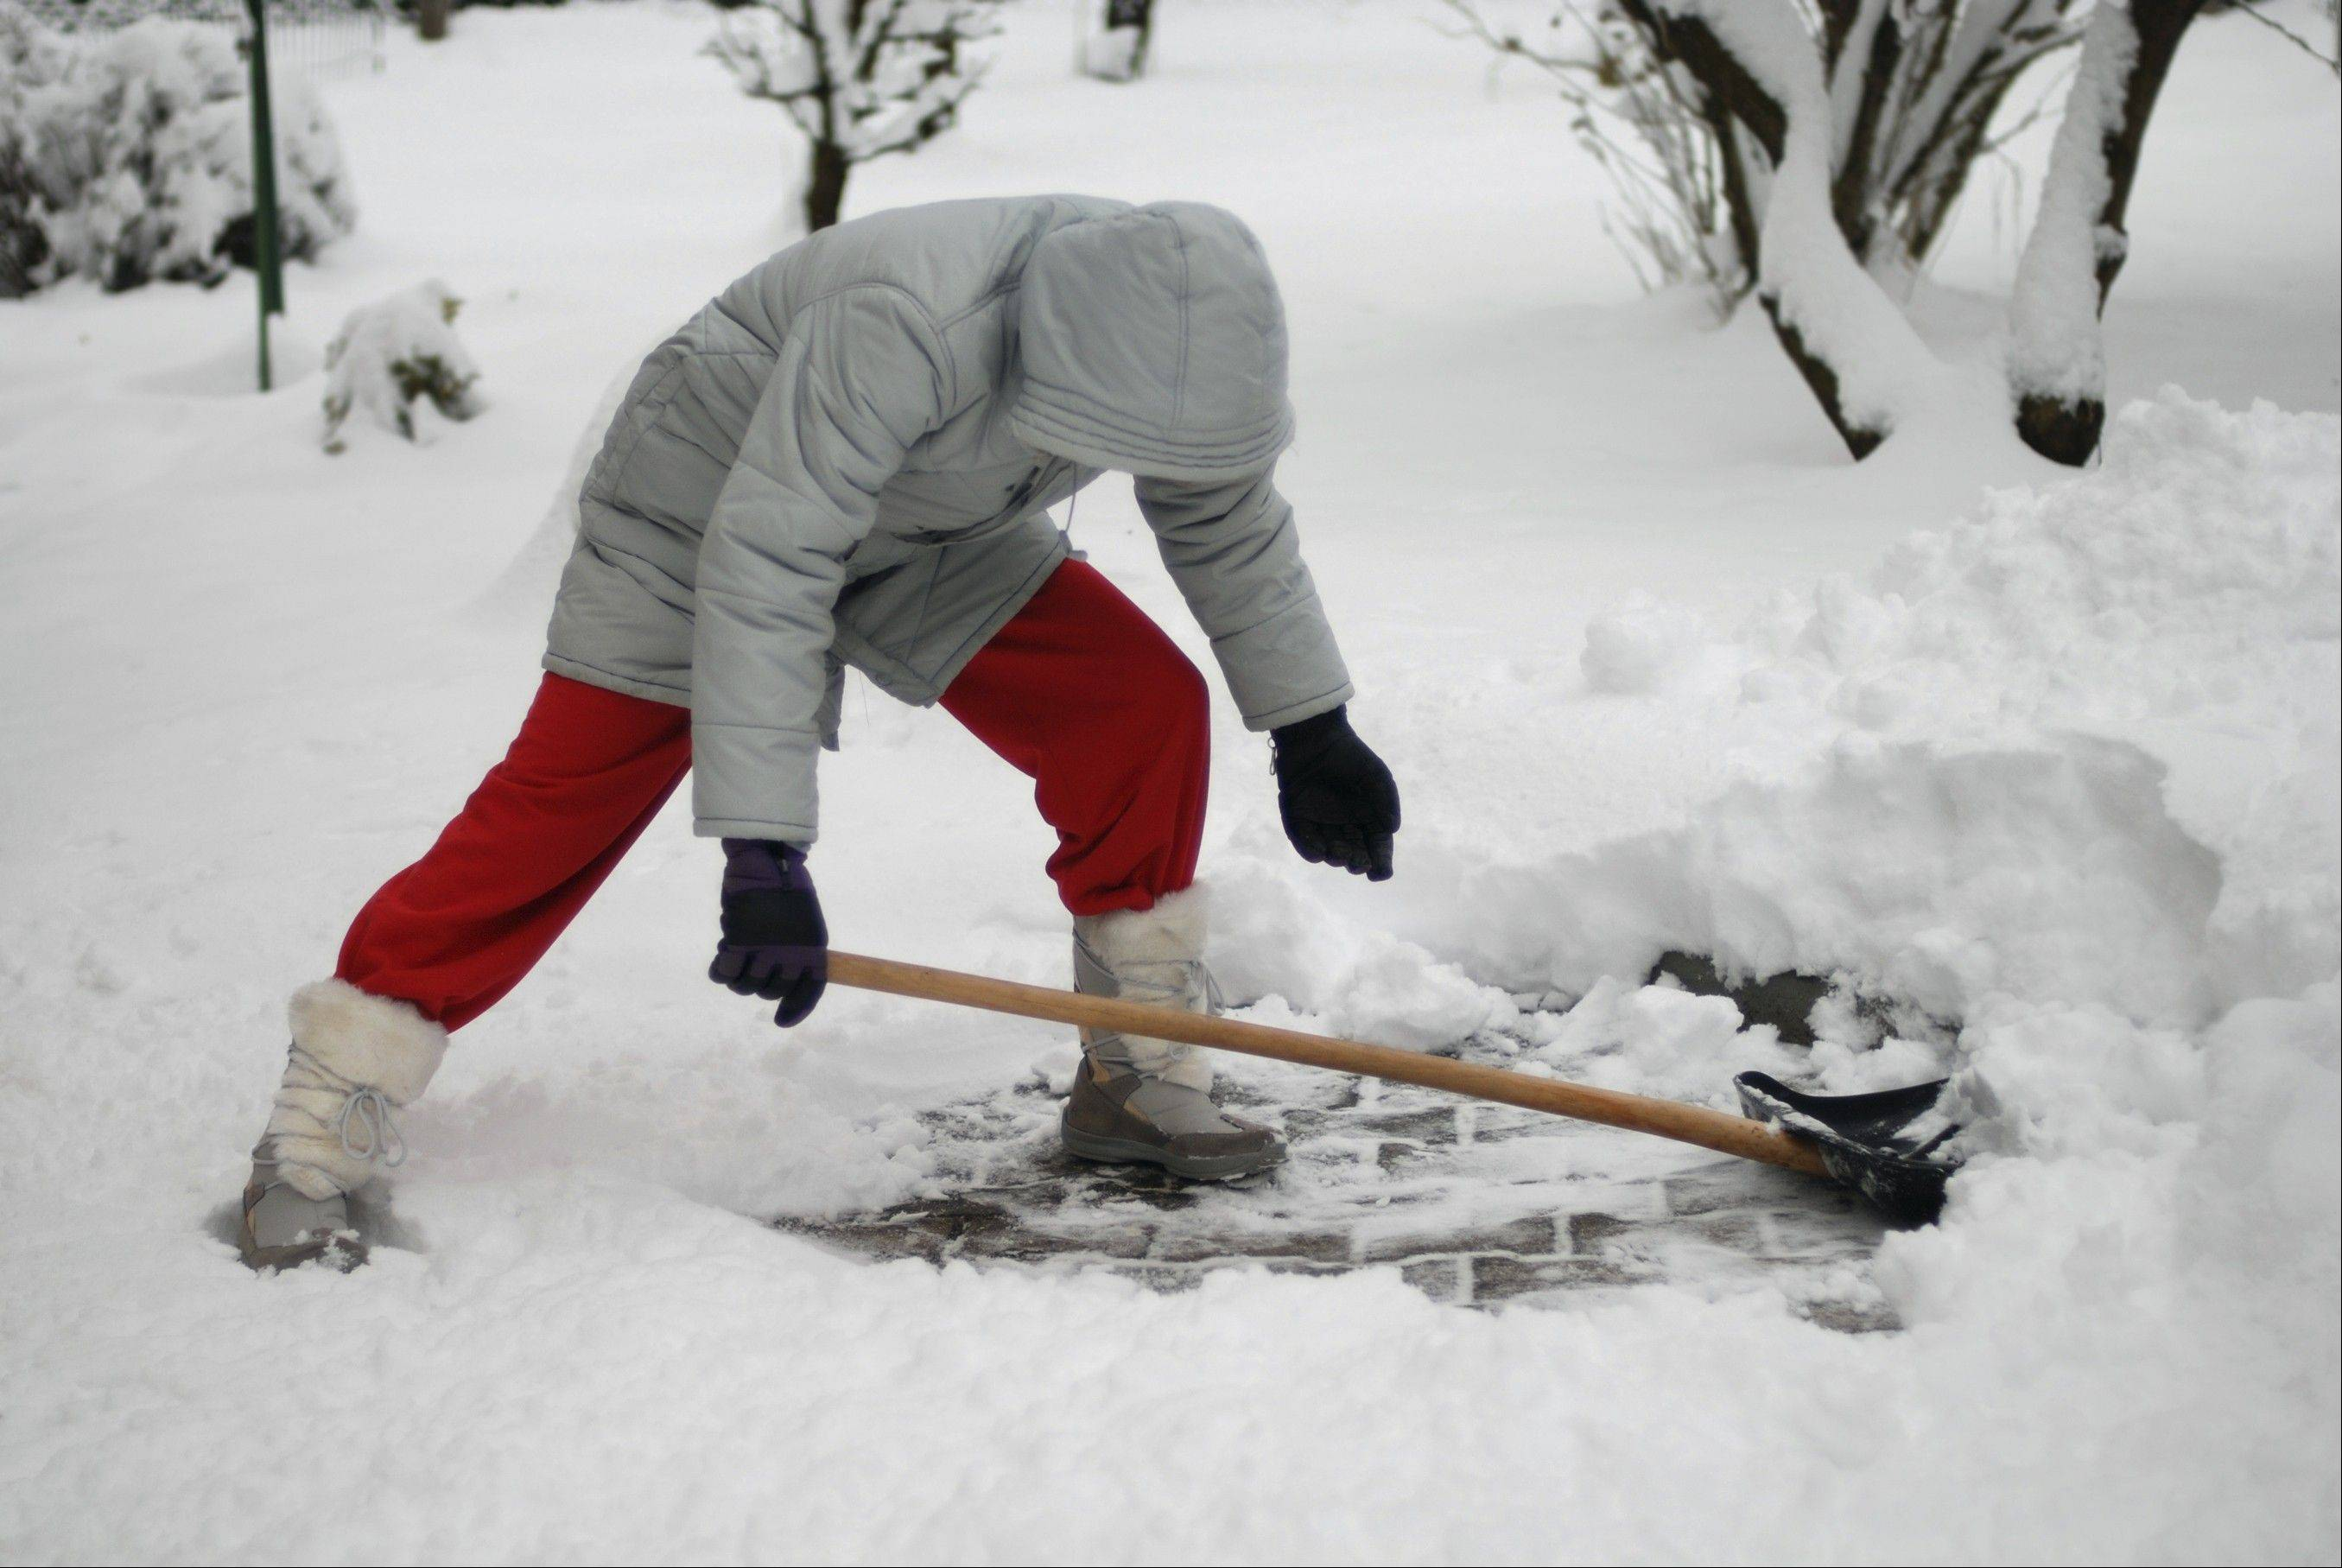 Stay hydrated and take frequent breaks when you shovel snow, experts advise.